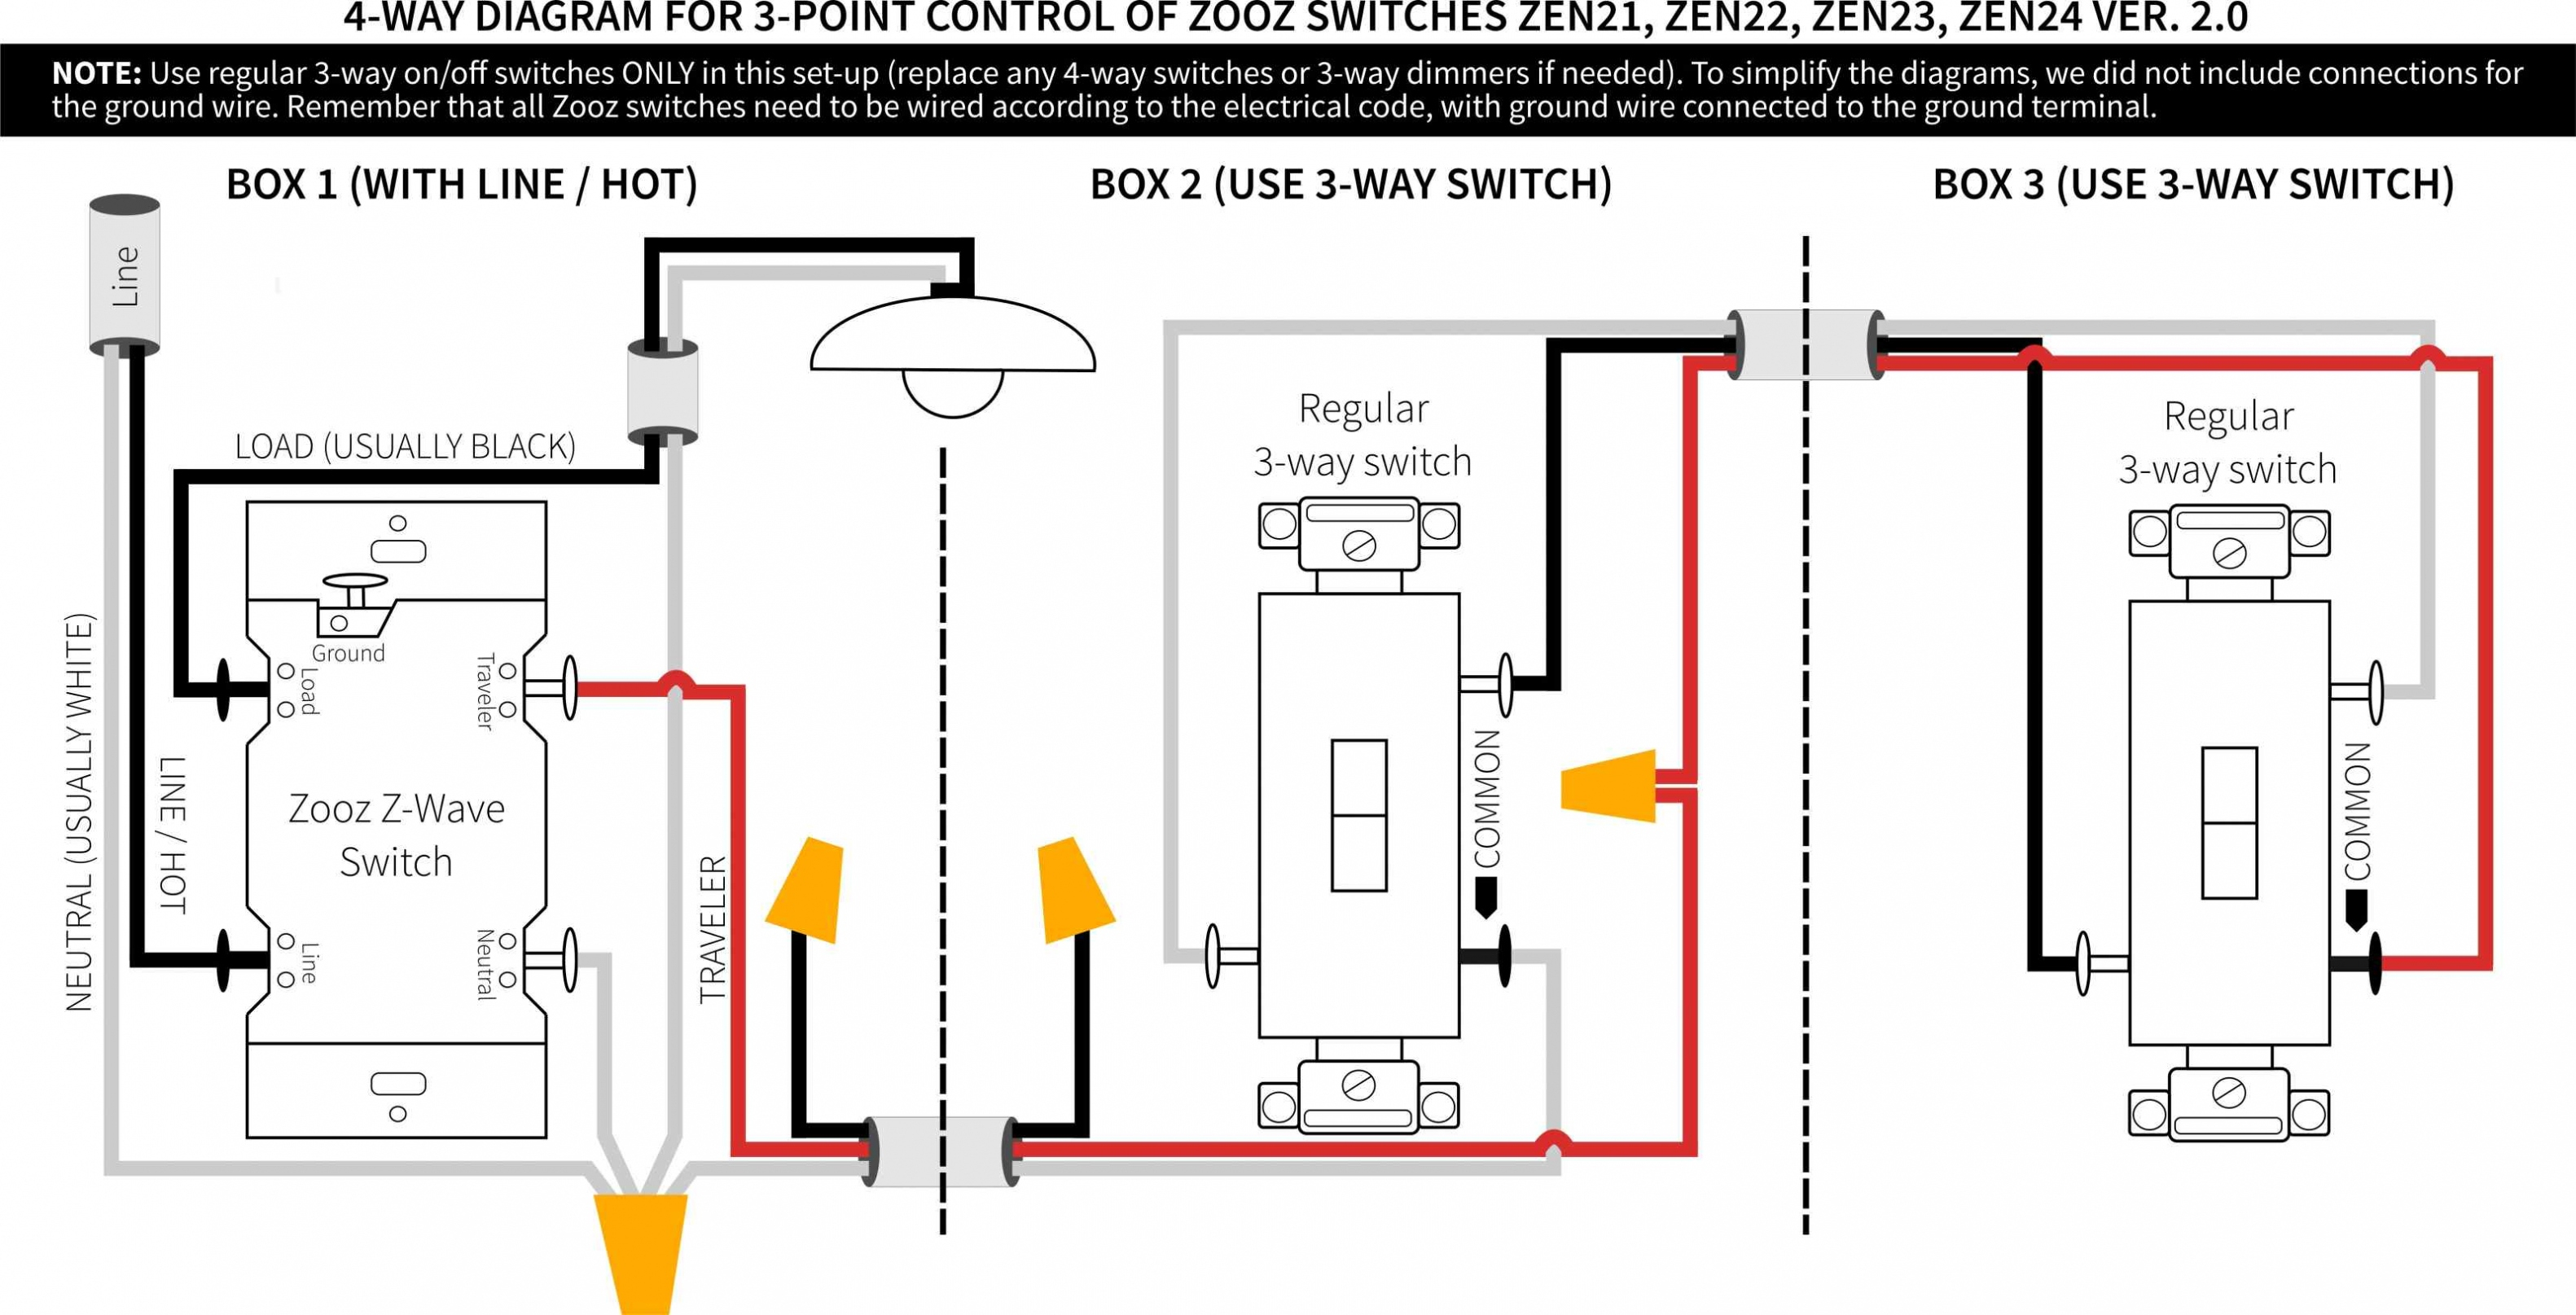 Leviton Schematic Wiring - Data Wiring Diagram Site - Leviton 4 Way Switch Wiring Diagram